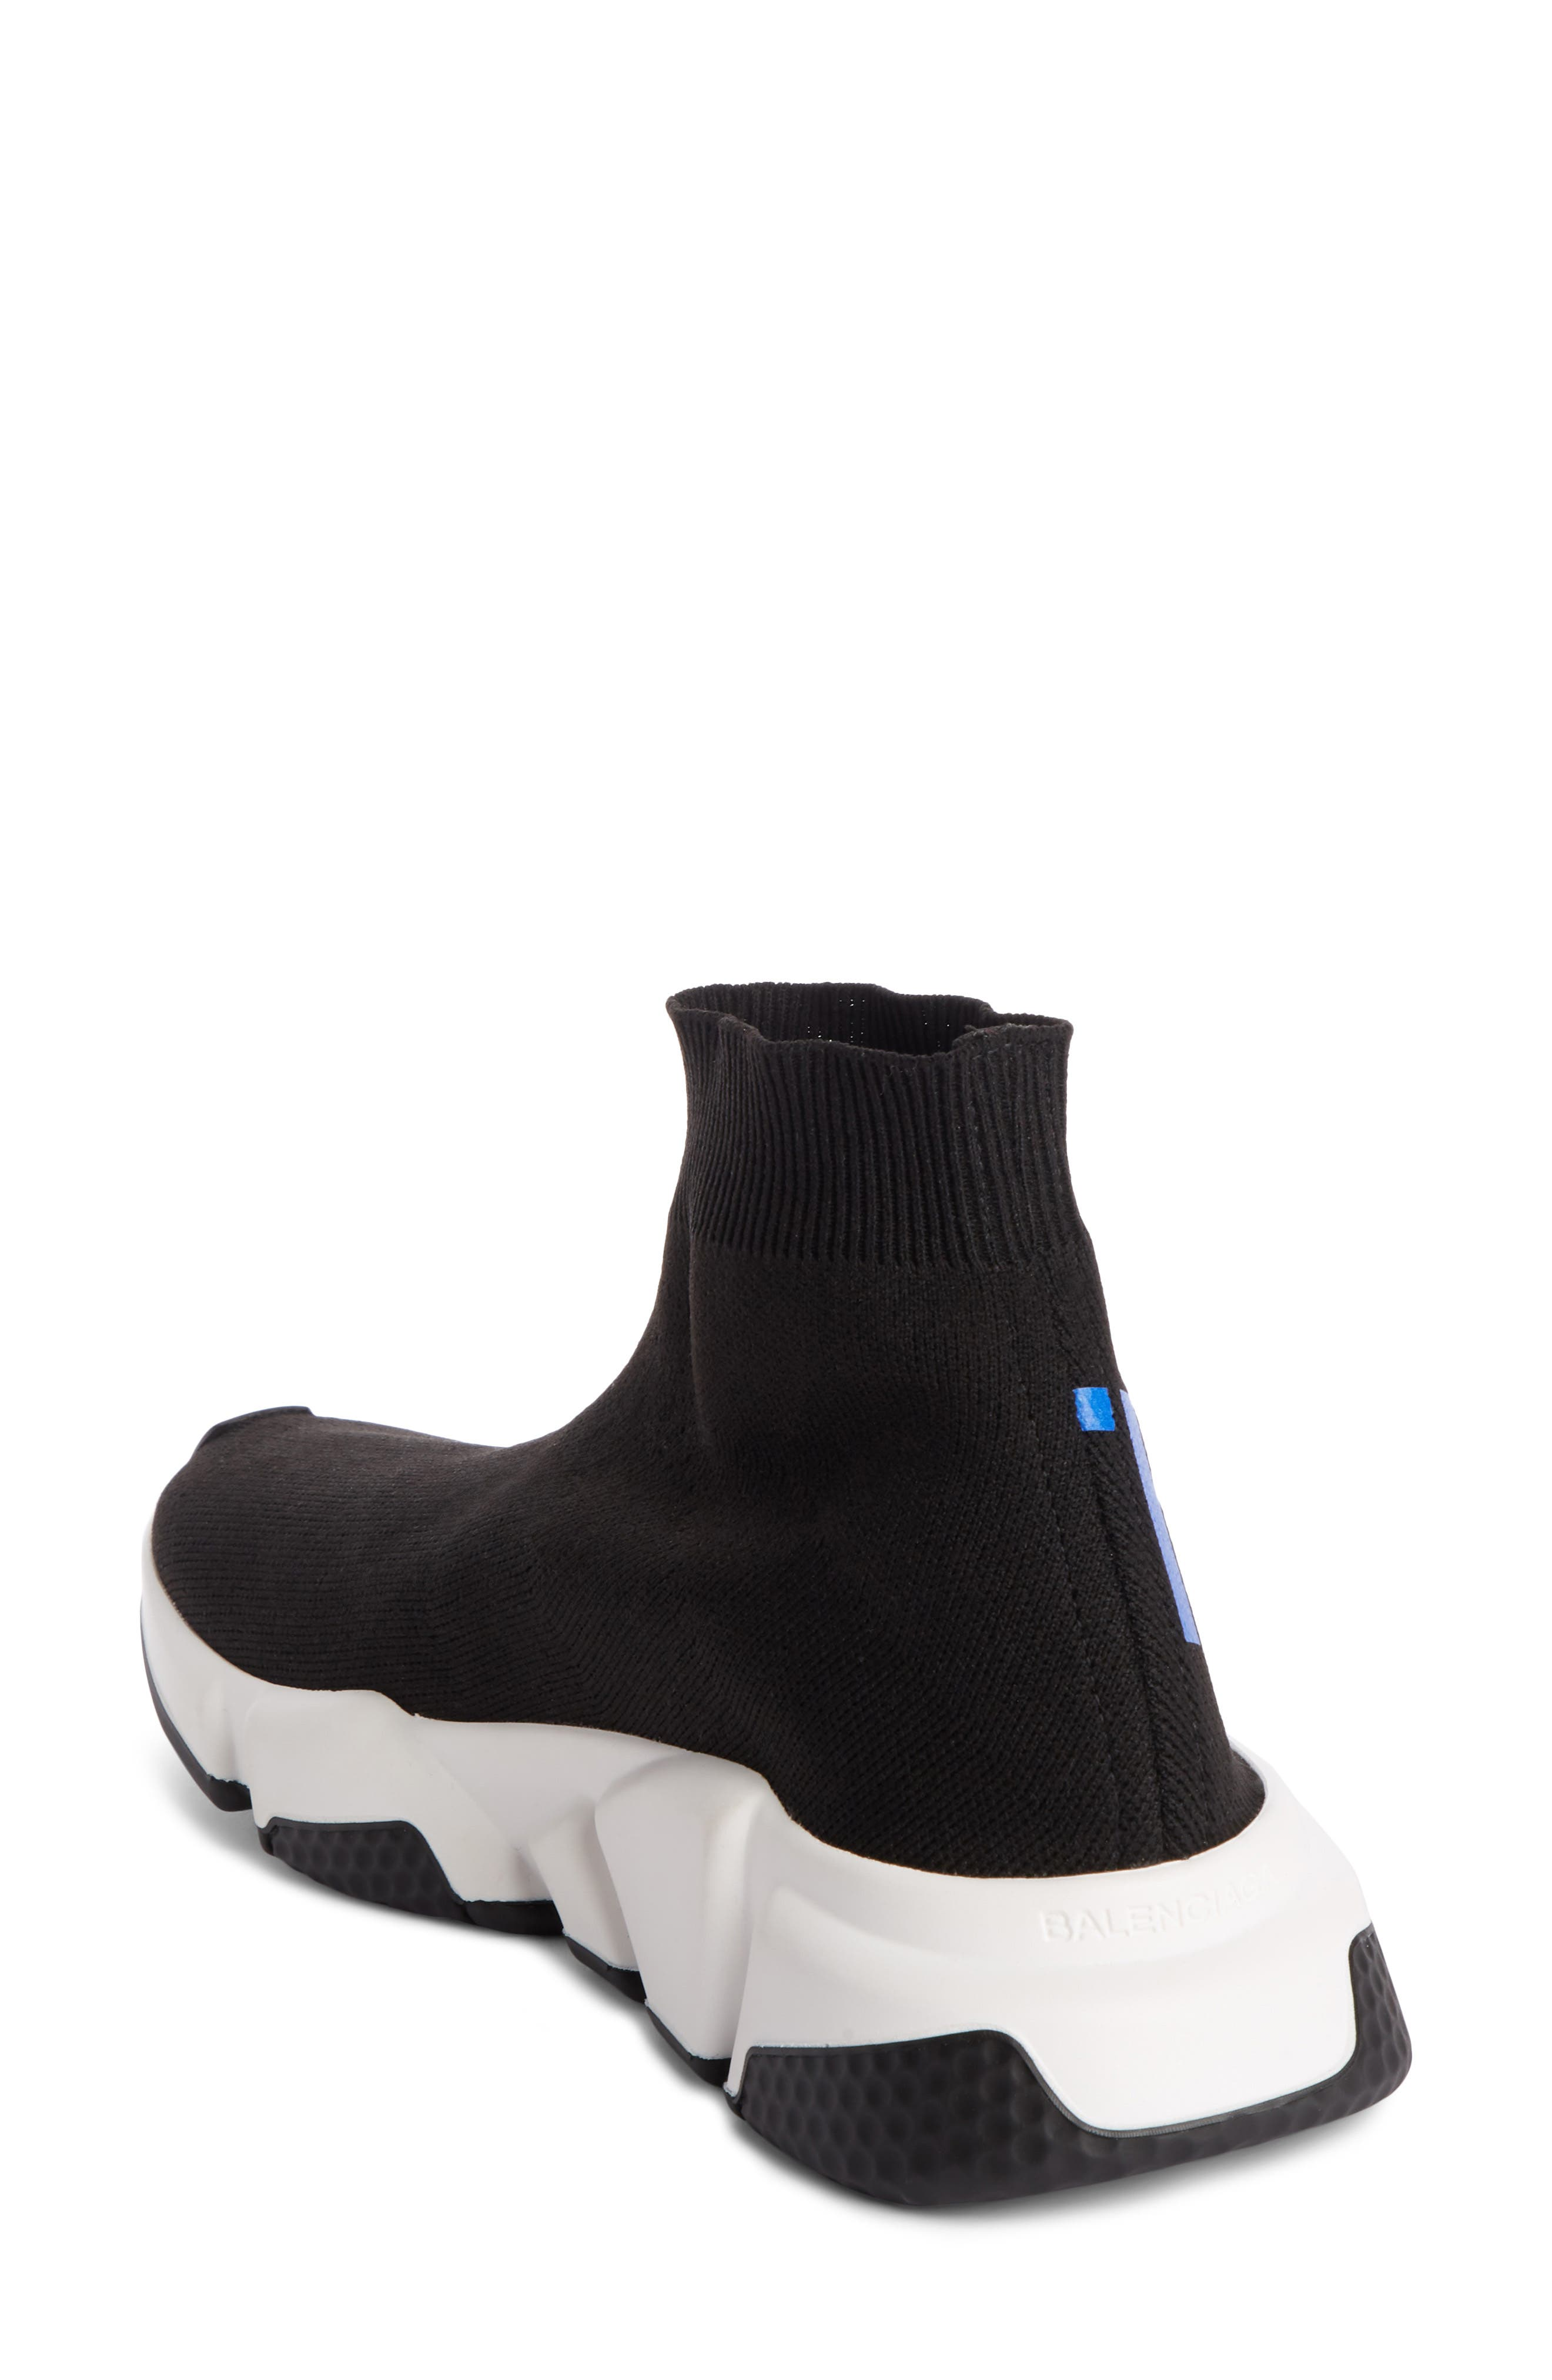 Dream Speed Trainer Sneaker,                             Alternate thumbnail 2, color,                             BLACK/ BLUE